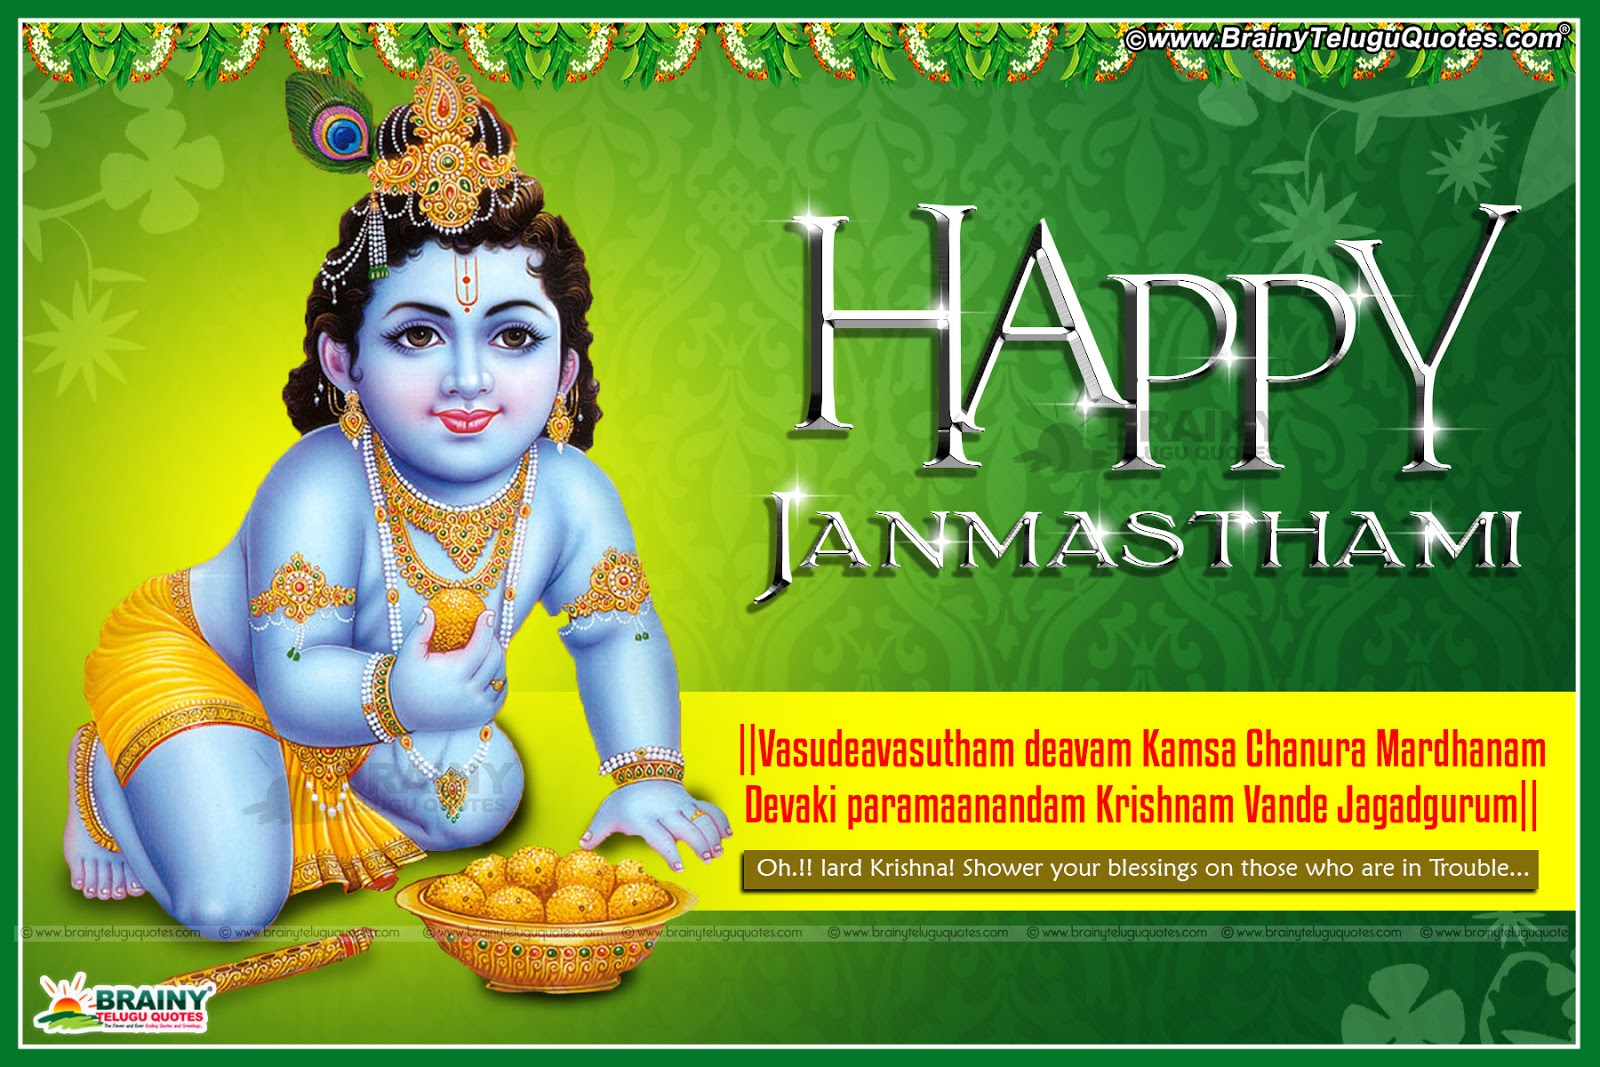 Happy Sri Krishna Janmastami 2016 Greetings Quotes In English